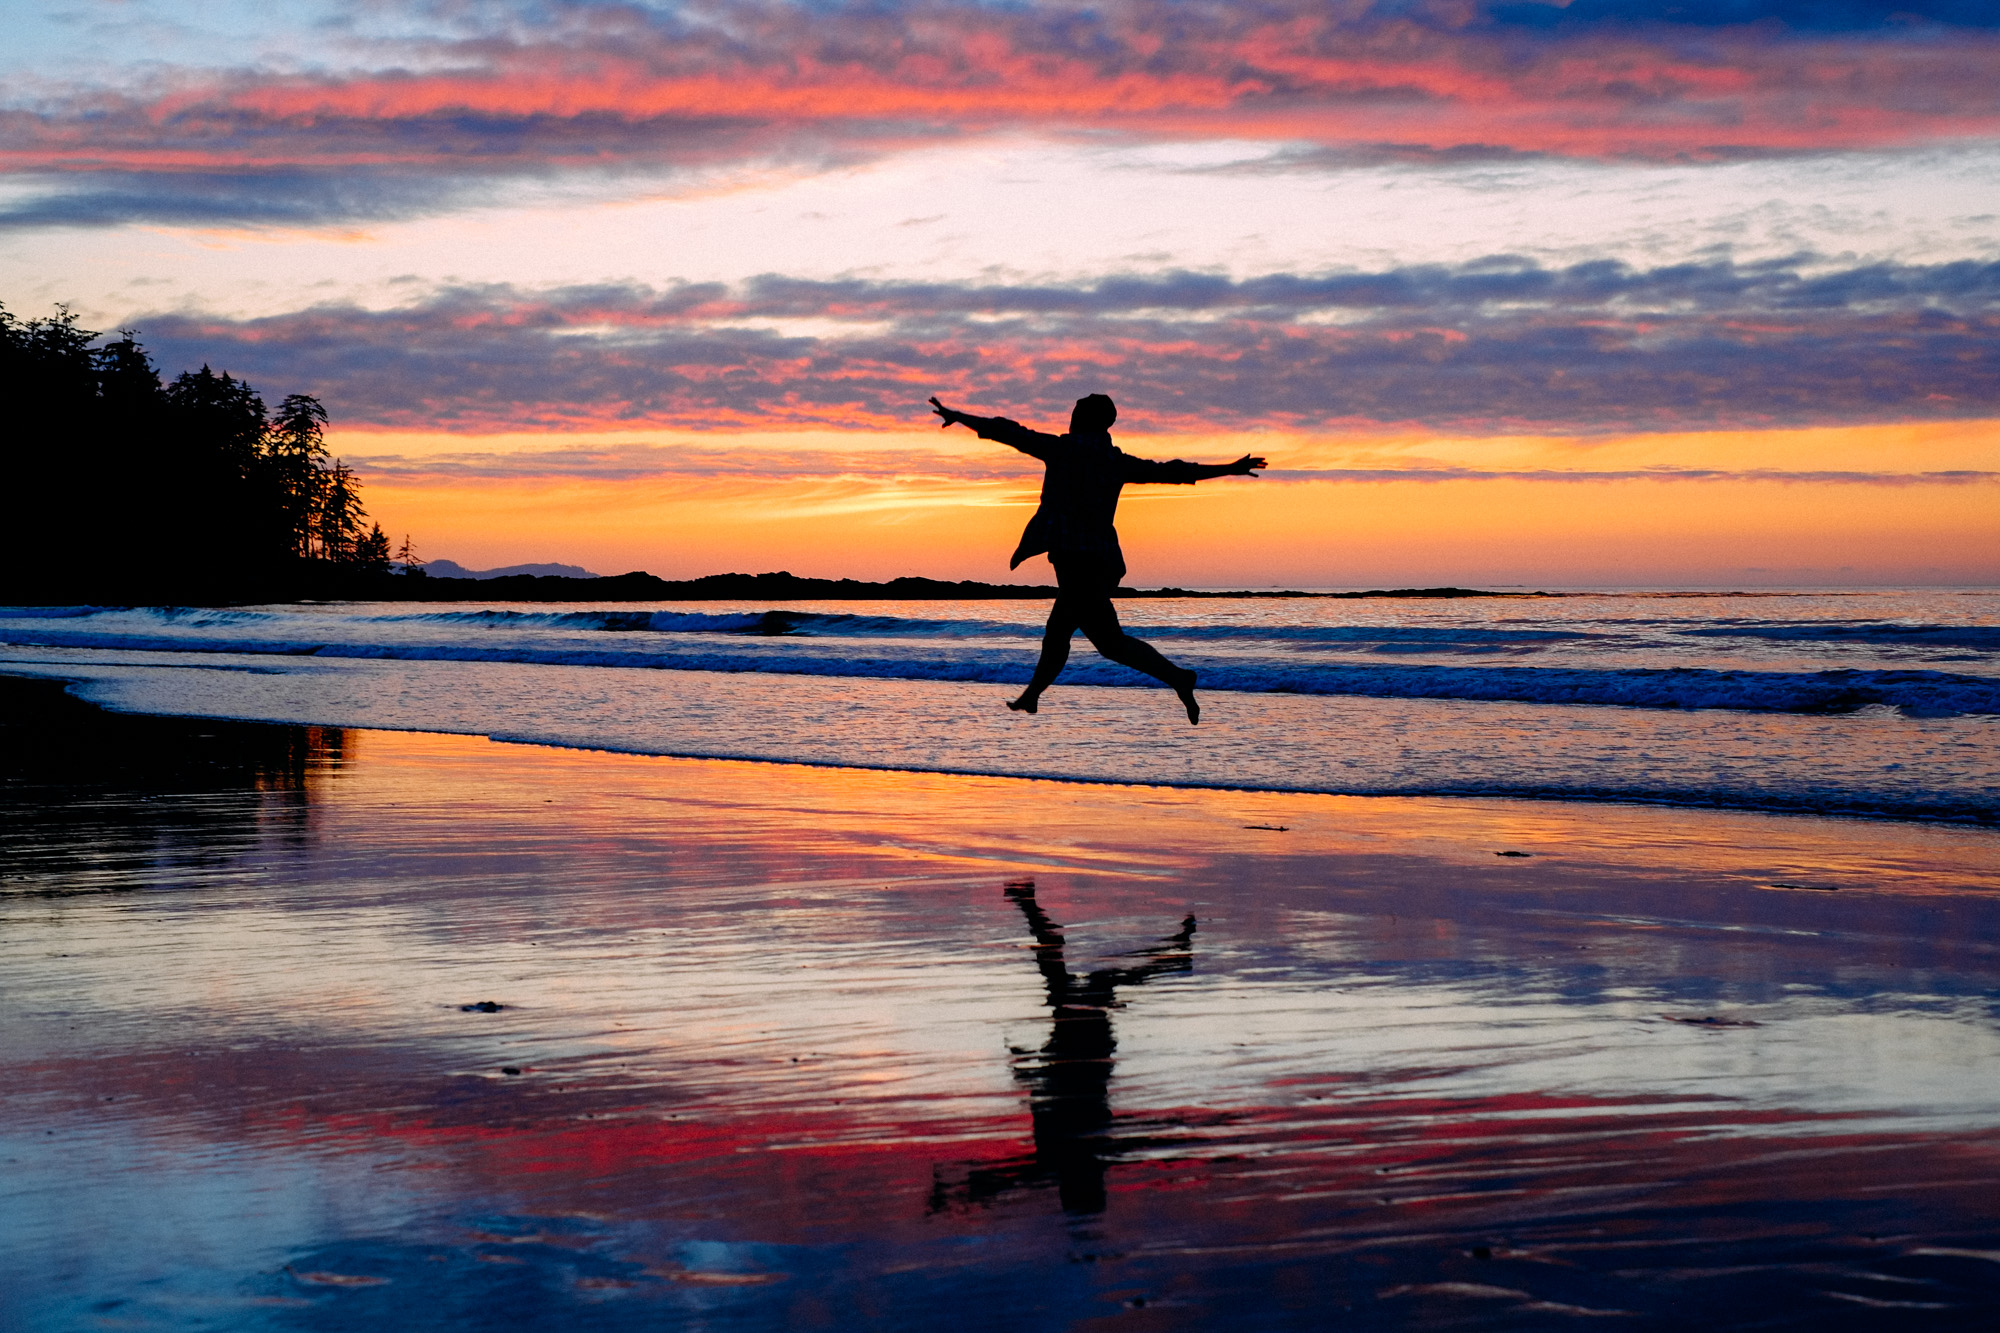 A woman jumps into the air at sunset on the beach.